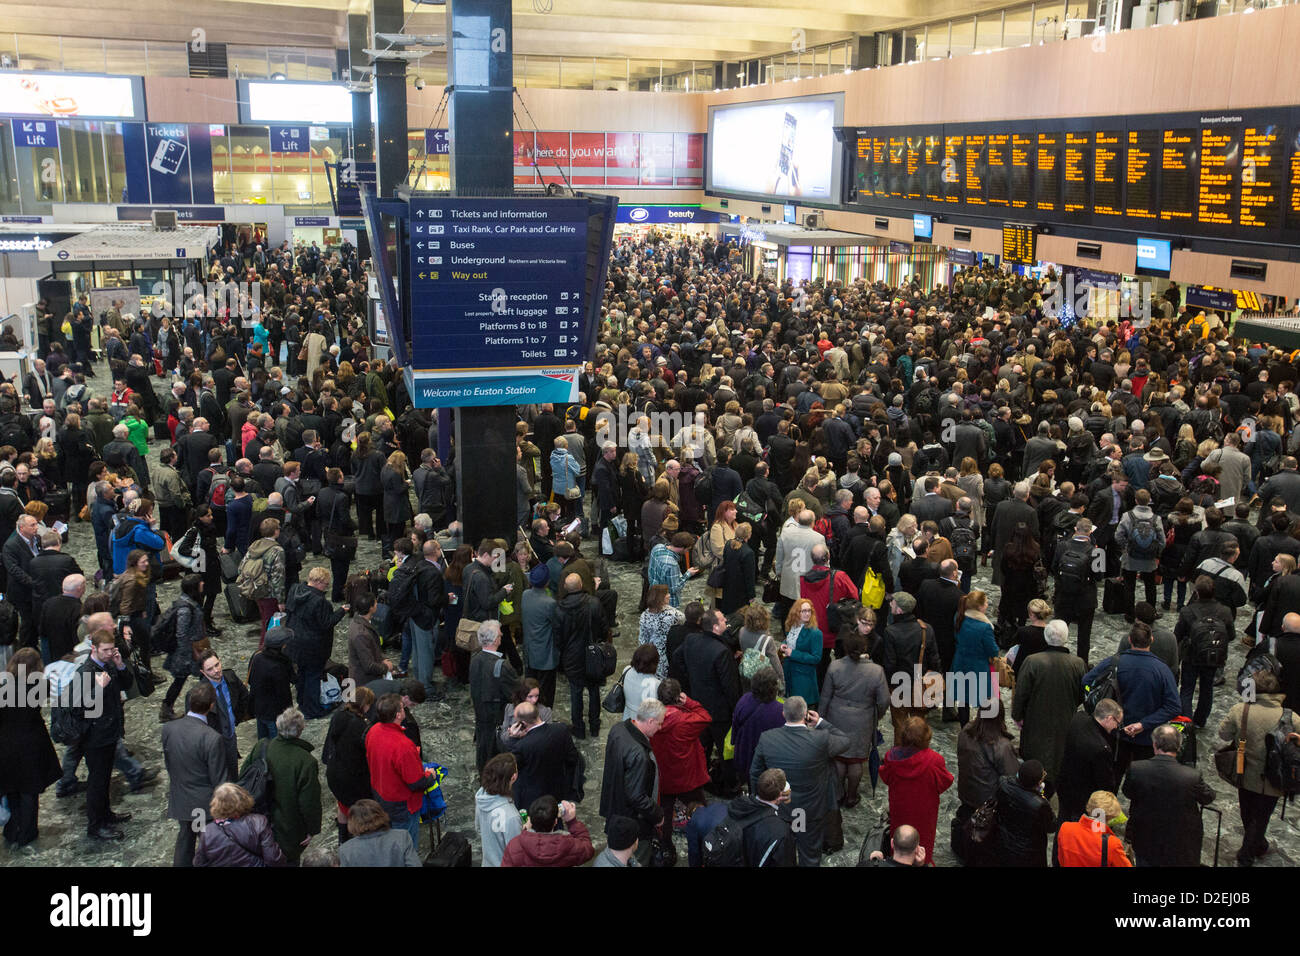 A crowded concourse at Euston Station in London - Stock Image